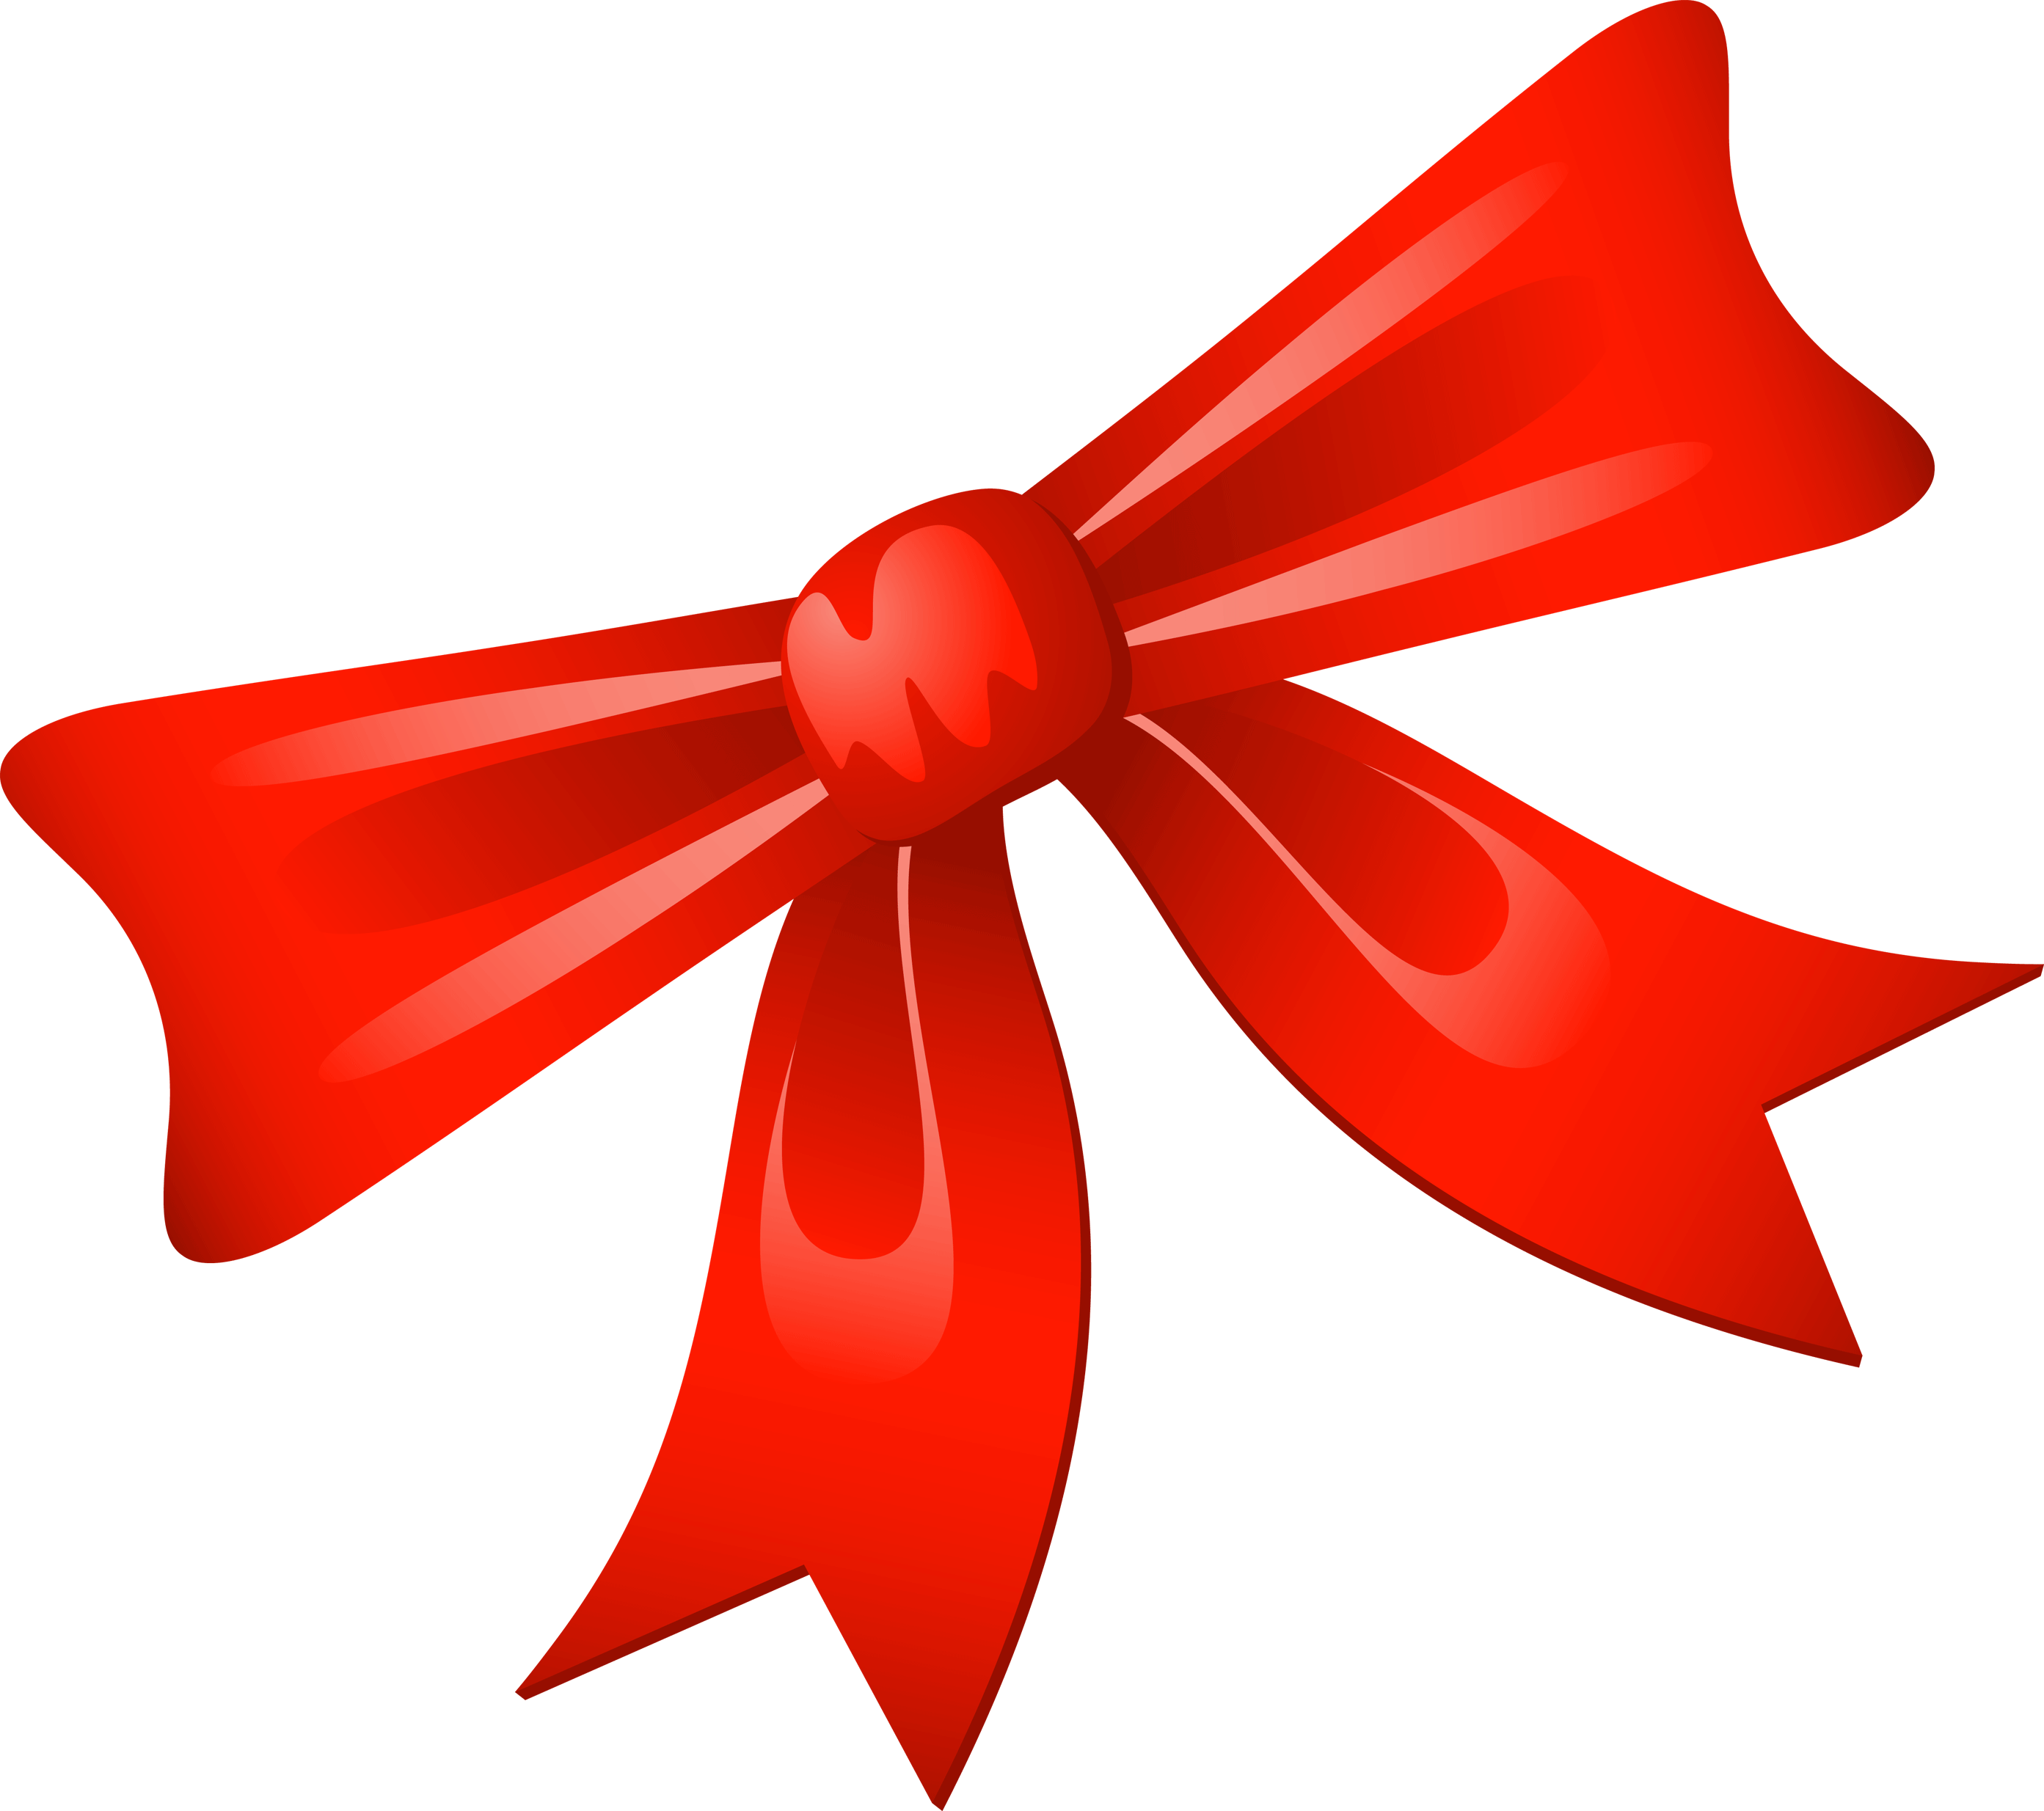 Red Christmas Bow Clip Art-Red Christmas Bow Clip Art-12